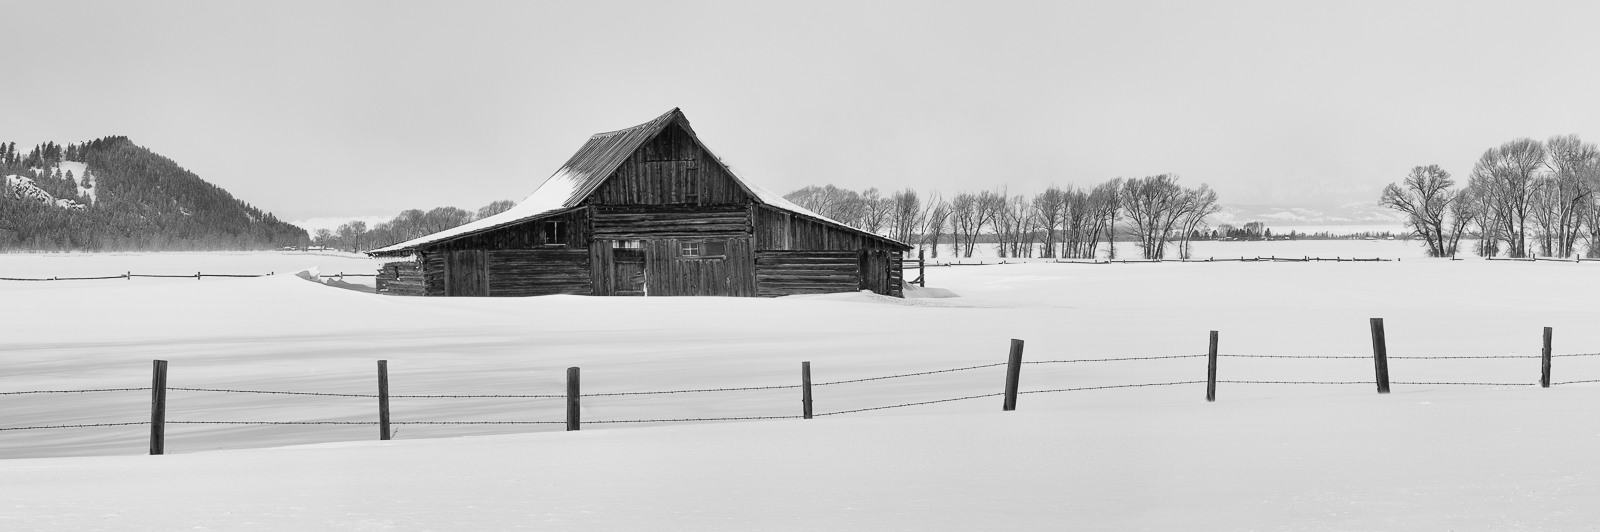 Grand Teton National Park, Wyoming, Winter At Mormon Row, Winter, Barn, horizontal